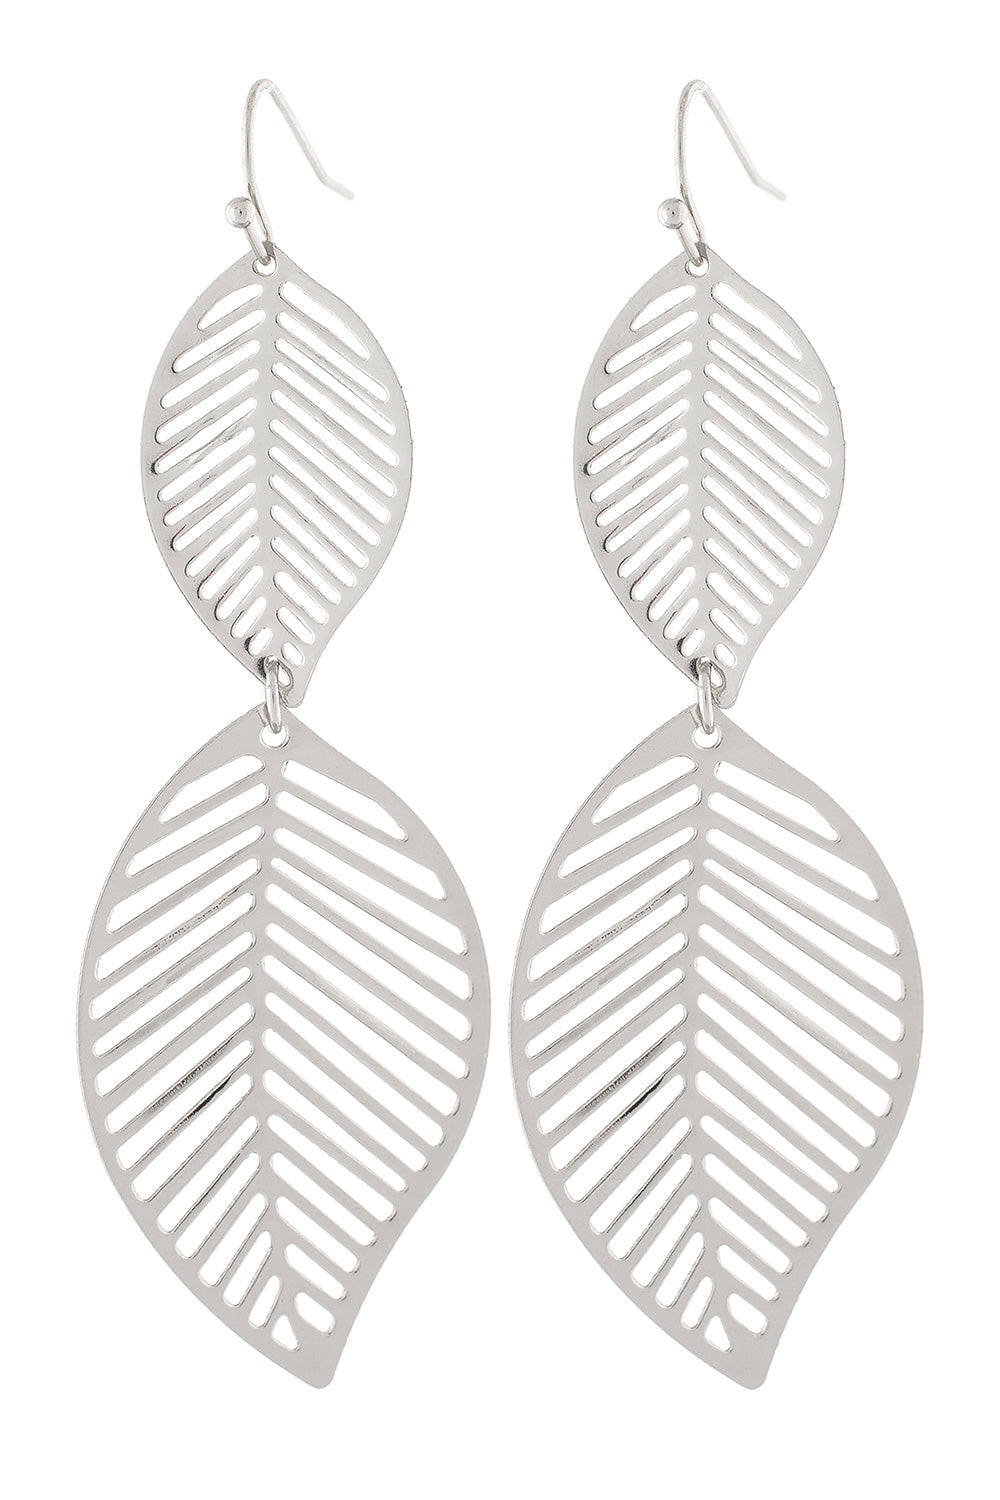 Type 4 Leafy Links Earrings